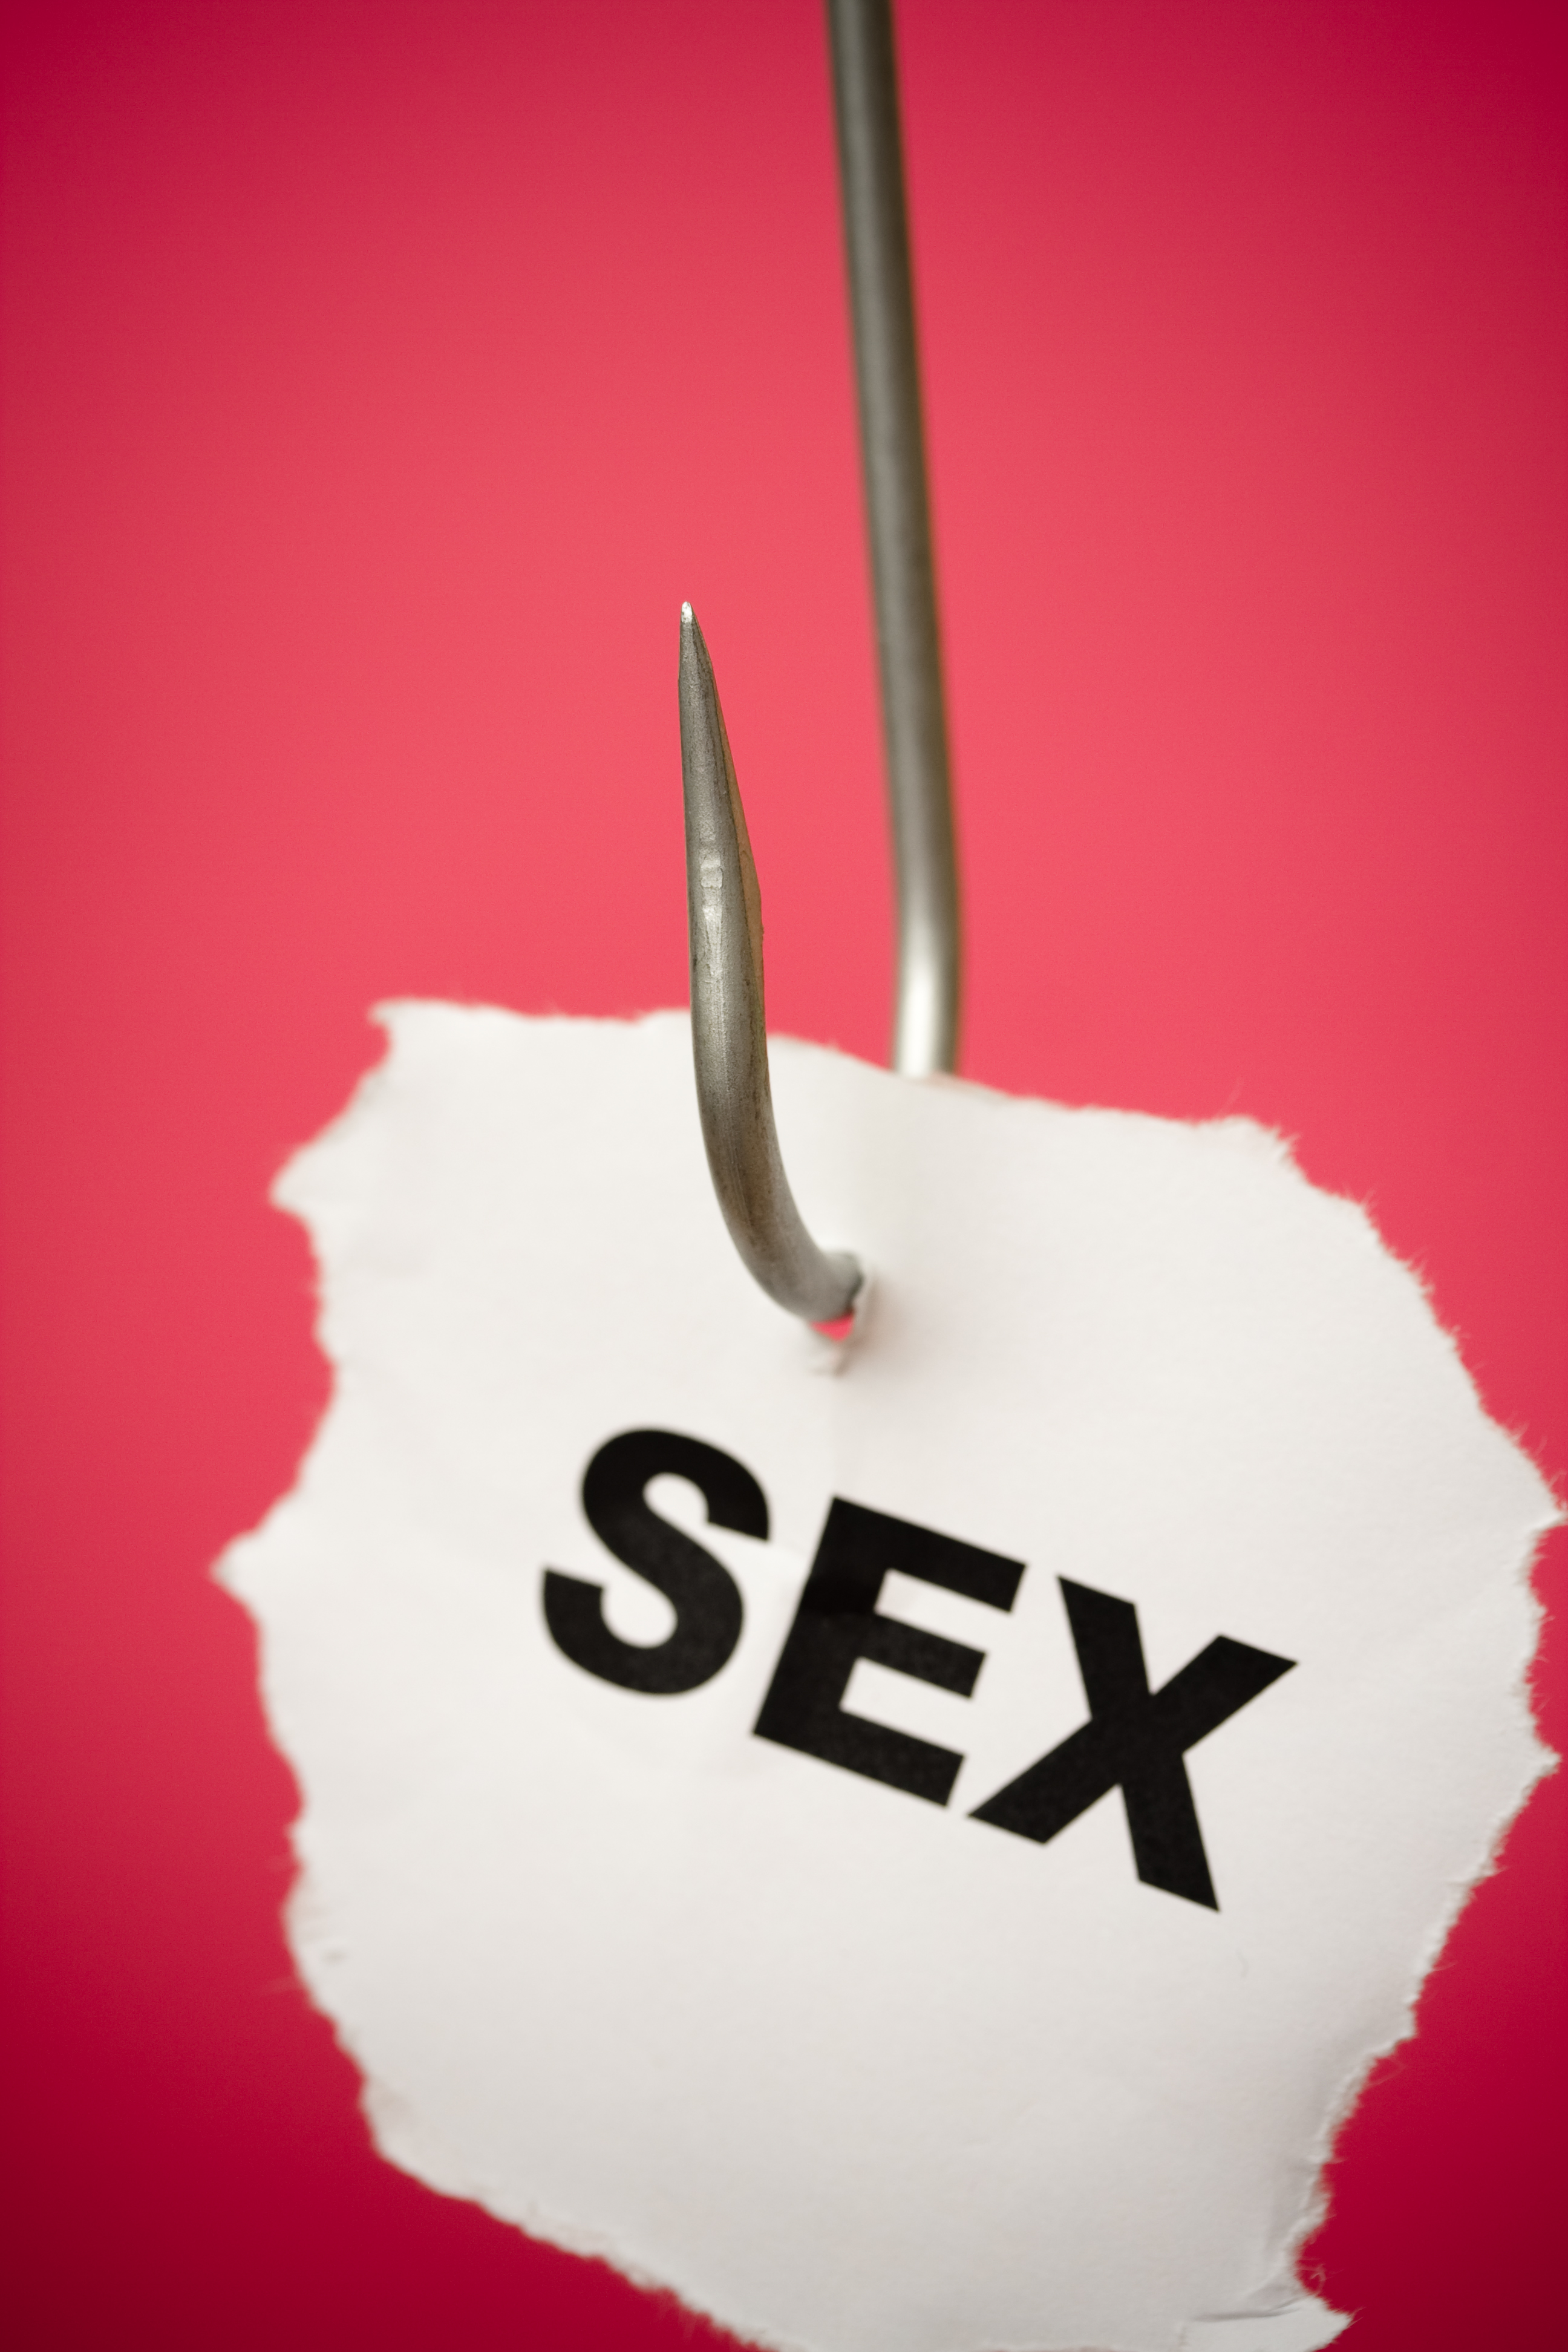 Adhd and sex fetish will not